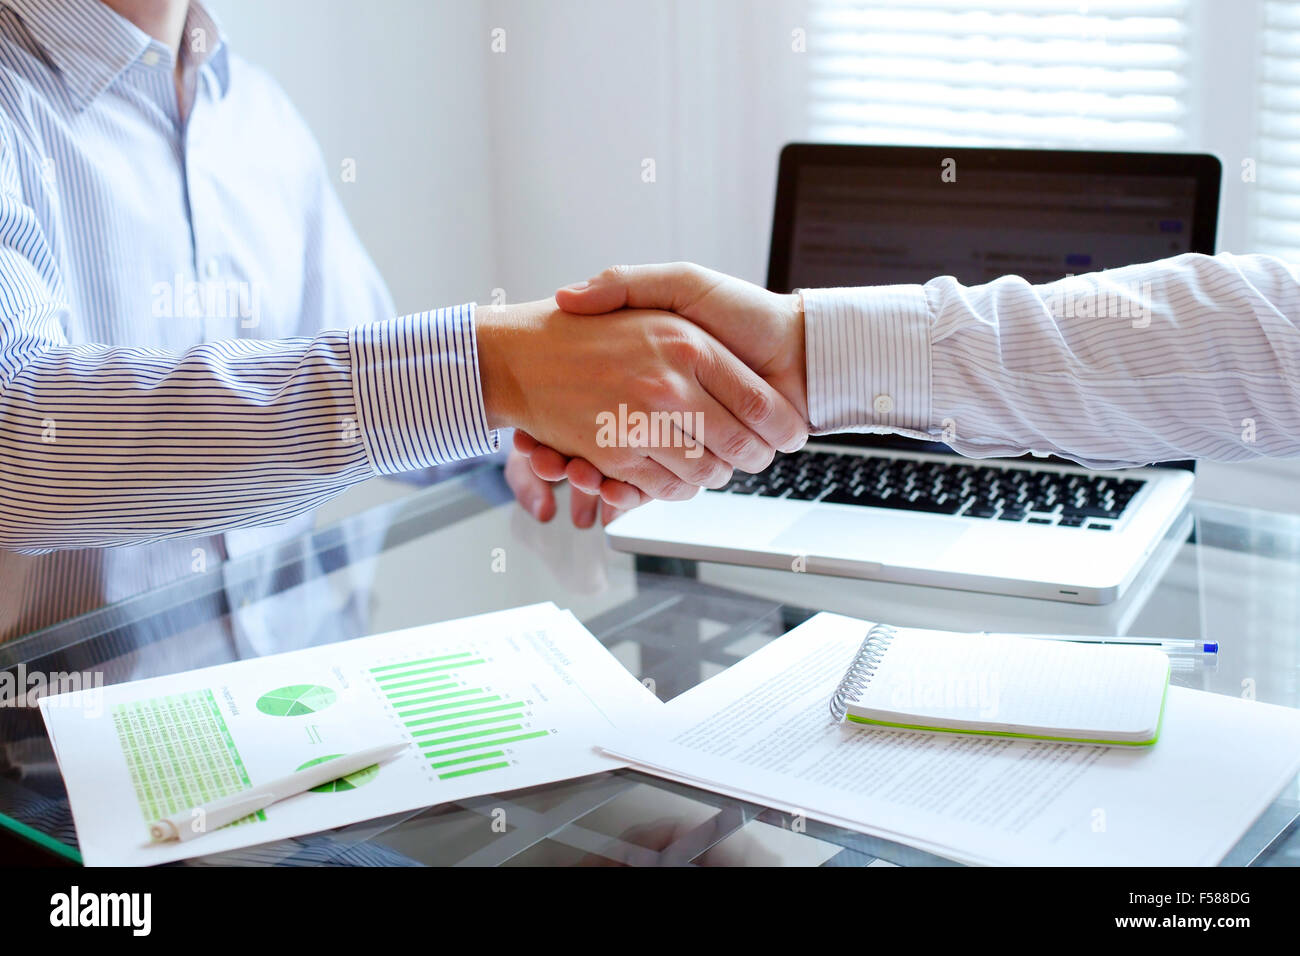 business meeting, handshake close up in office background - Stock Image